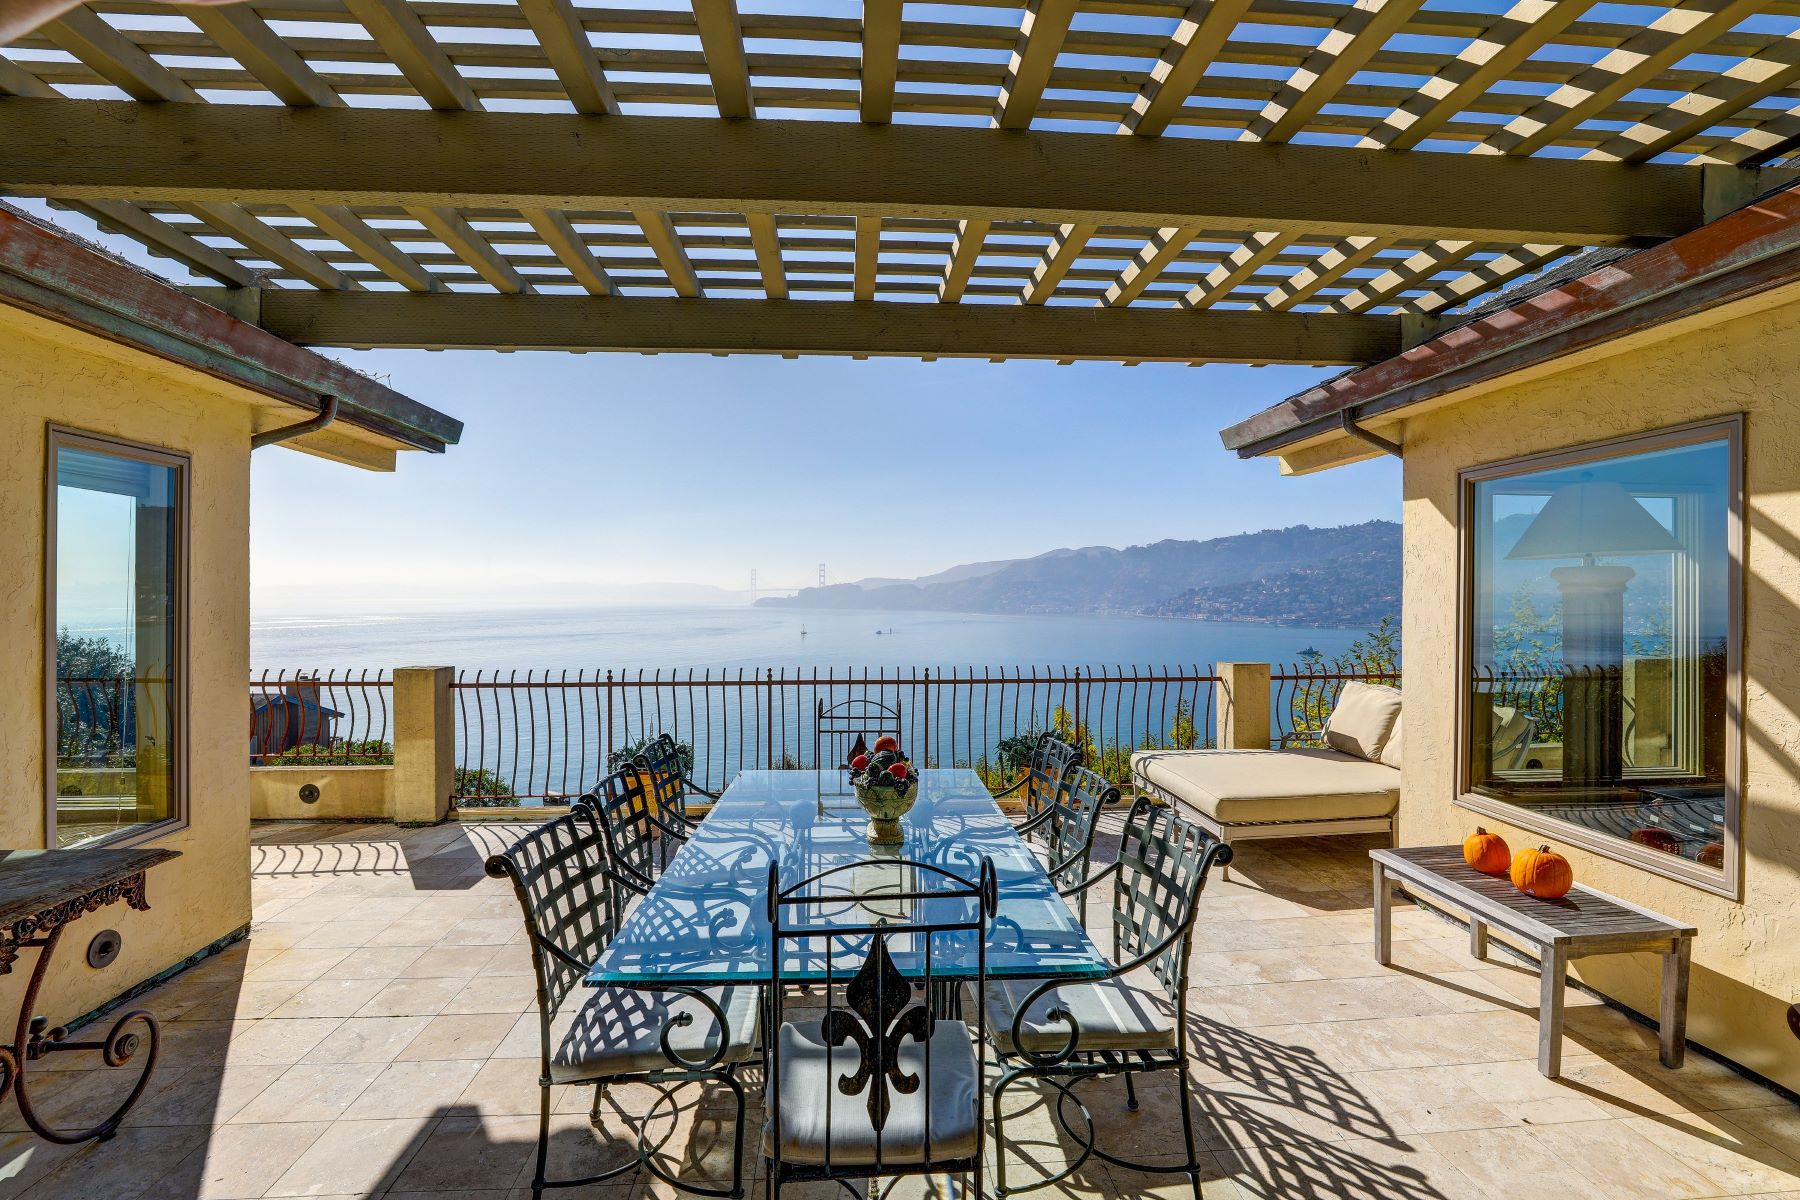 Additional photo for property listing at World Class View on Prime Belvedere Location 320 Belvedere Avenue Belvedere, California 94920 United States